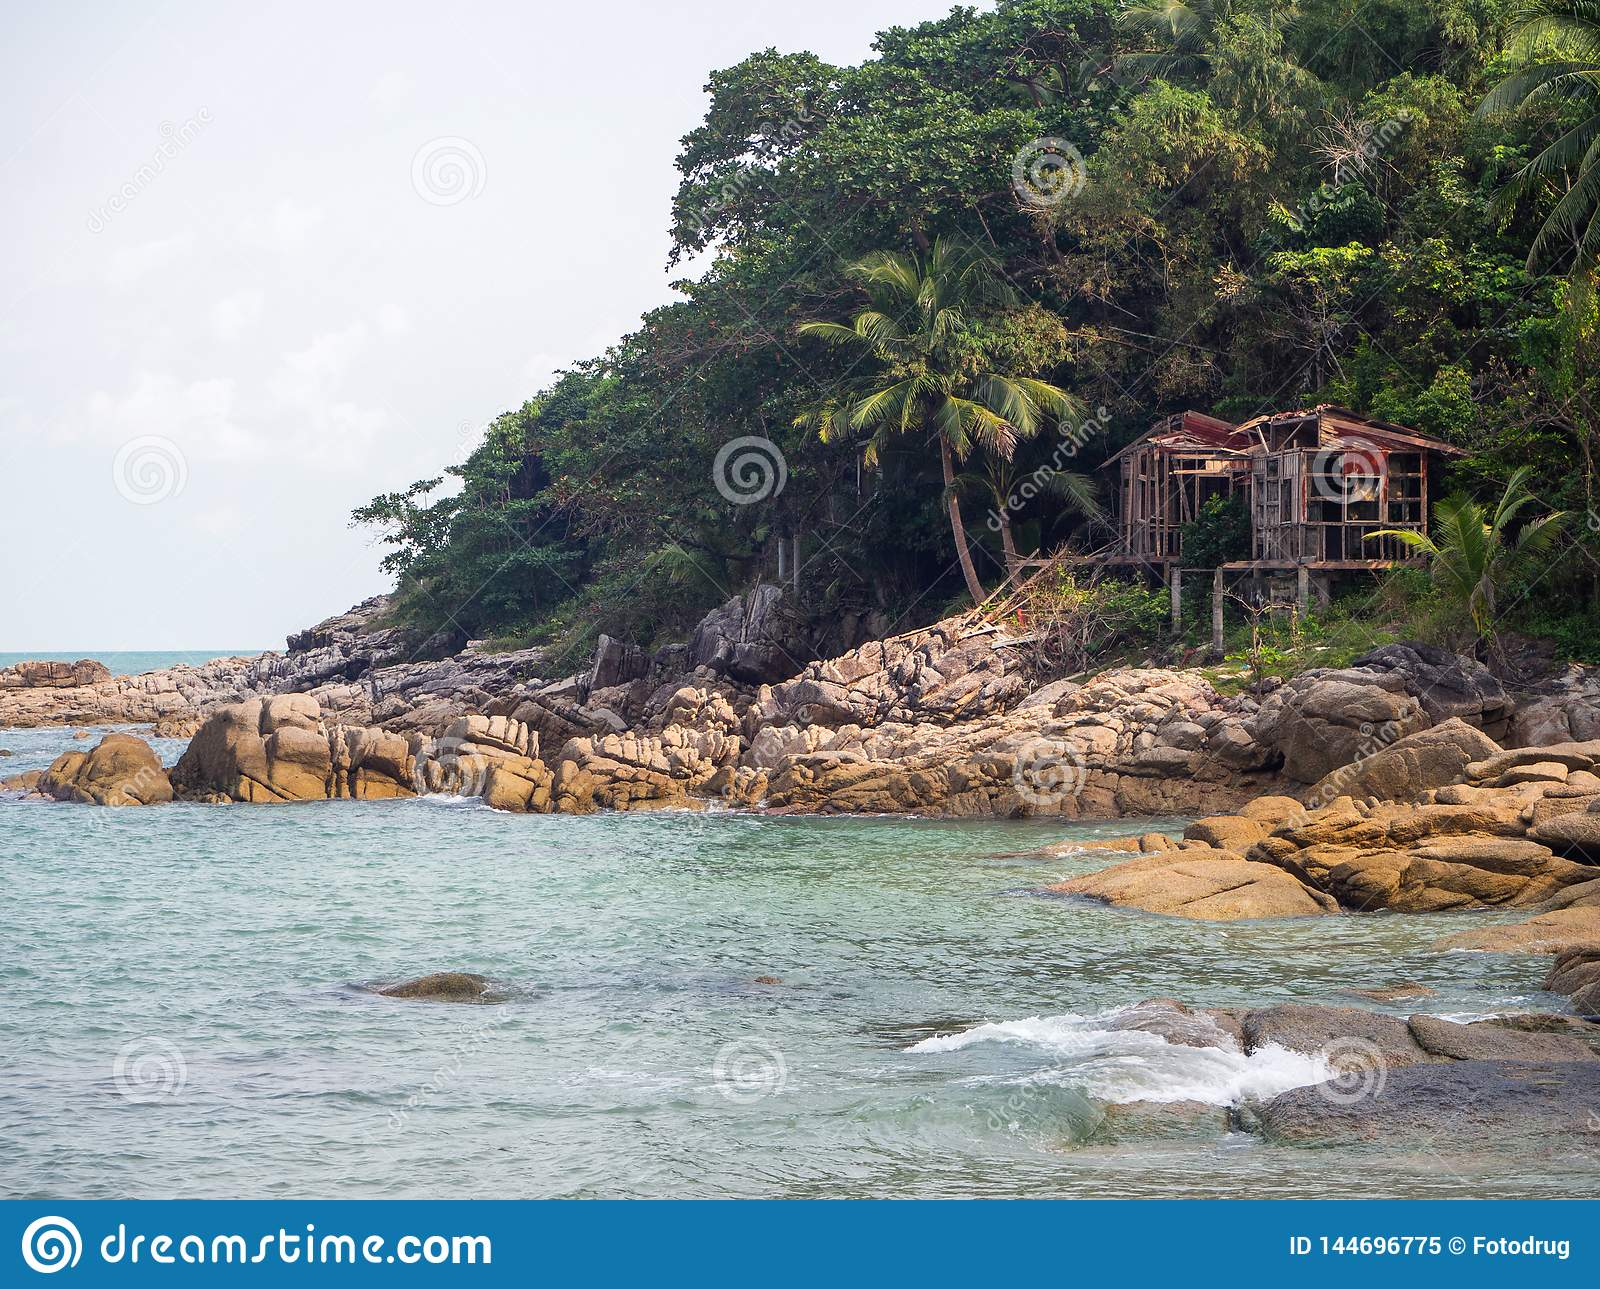 Beautiful pictures on the island of Phangan